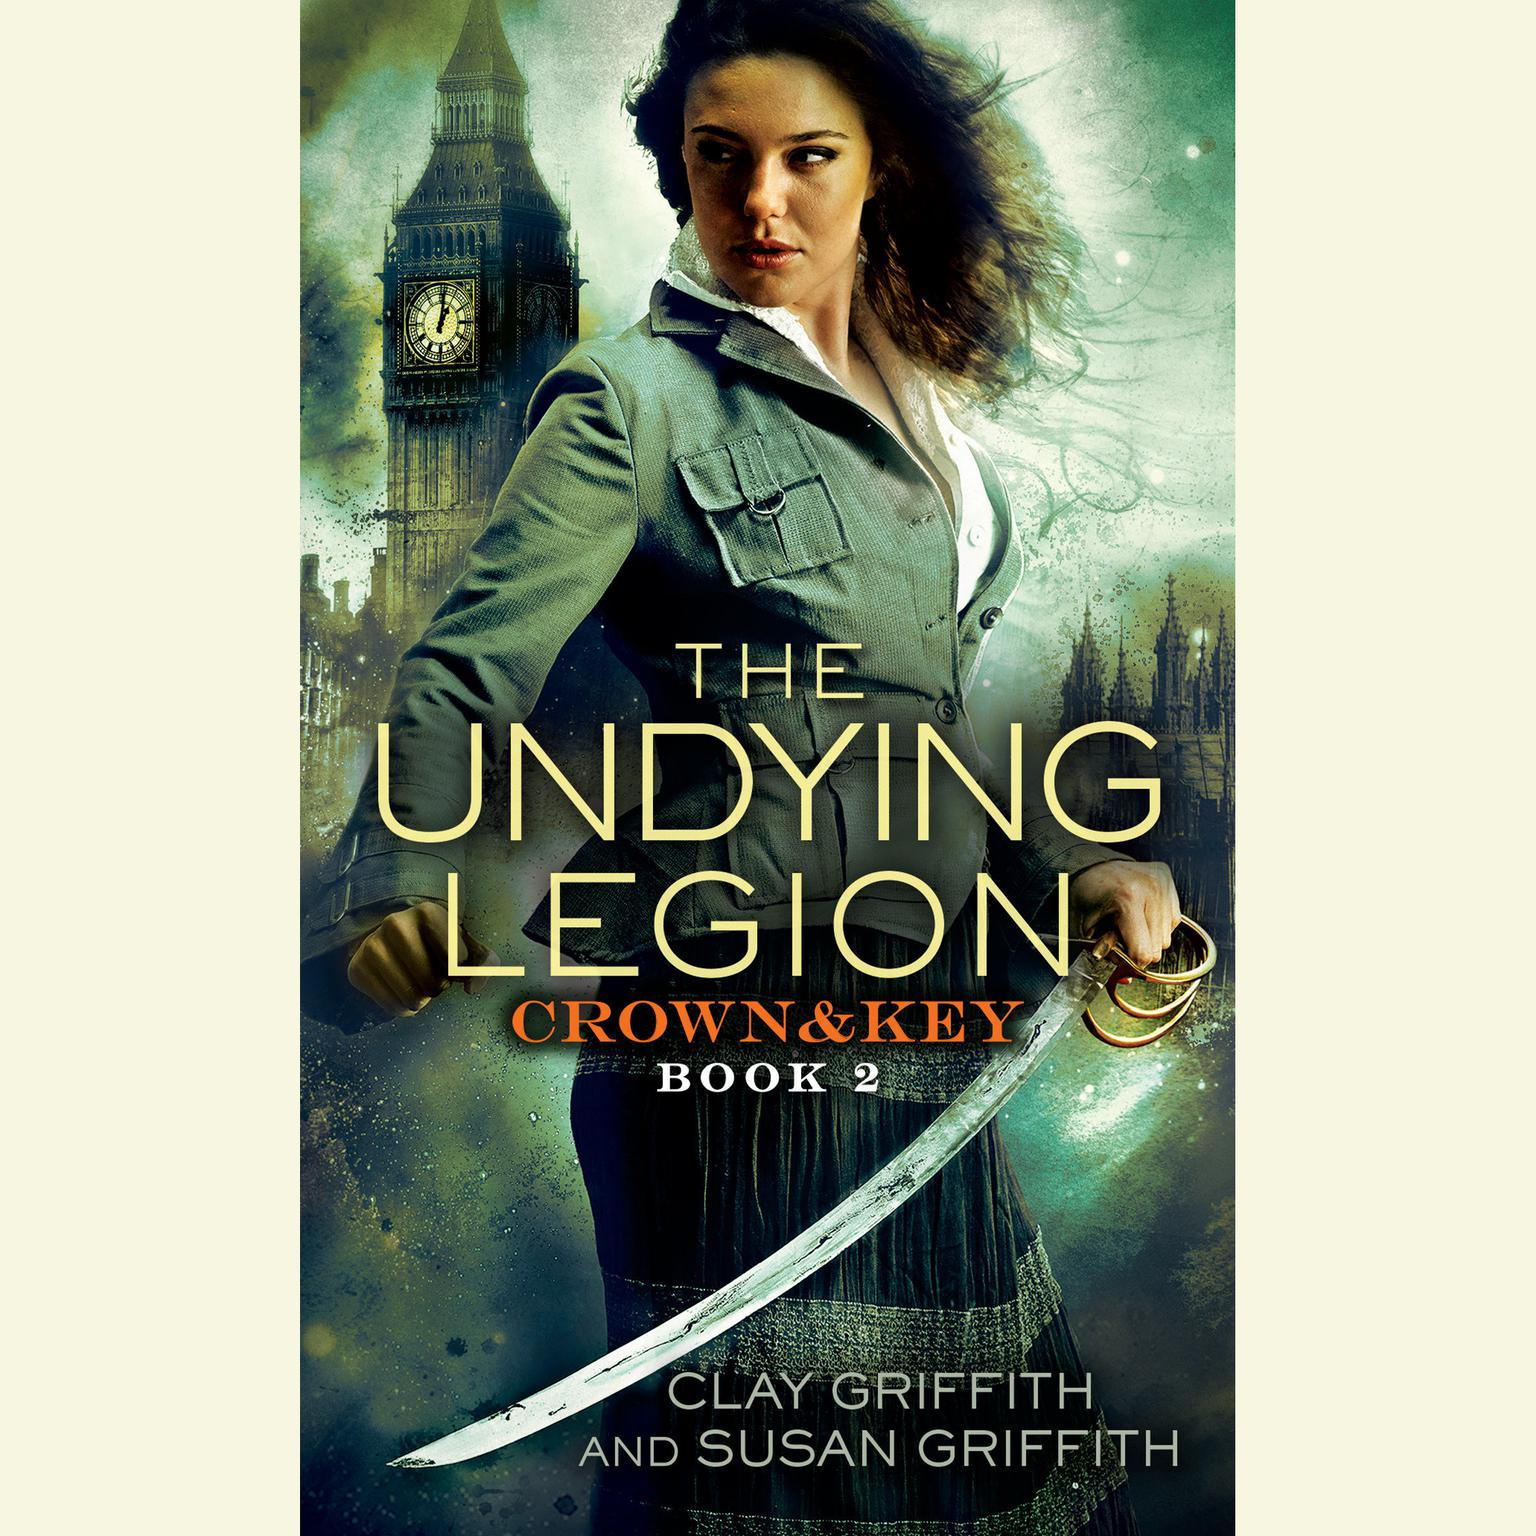 Printable The Undying Legion: Crown & Key Audiobook Cover Art